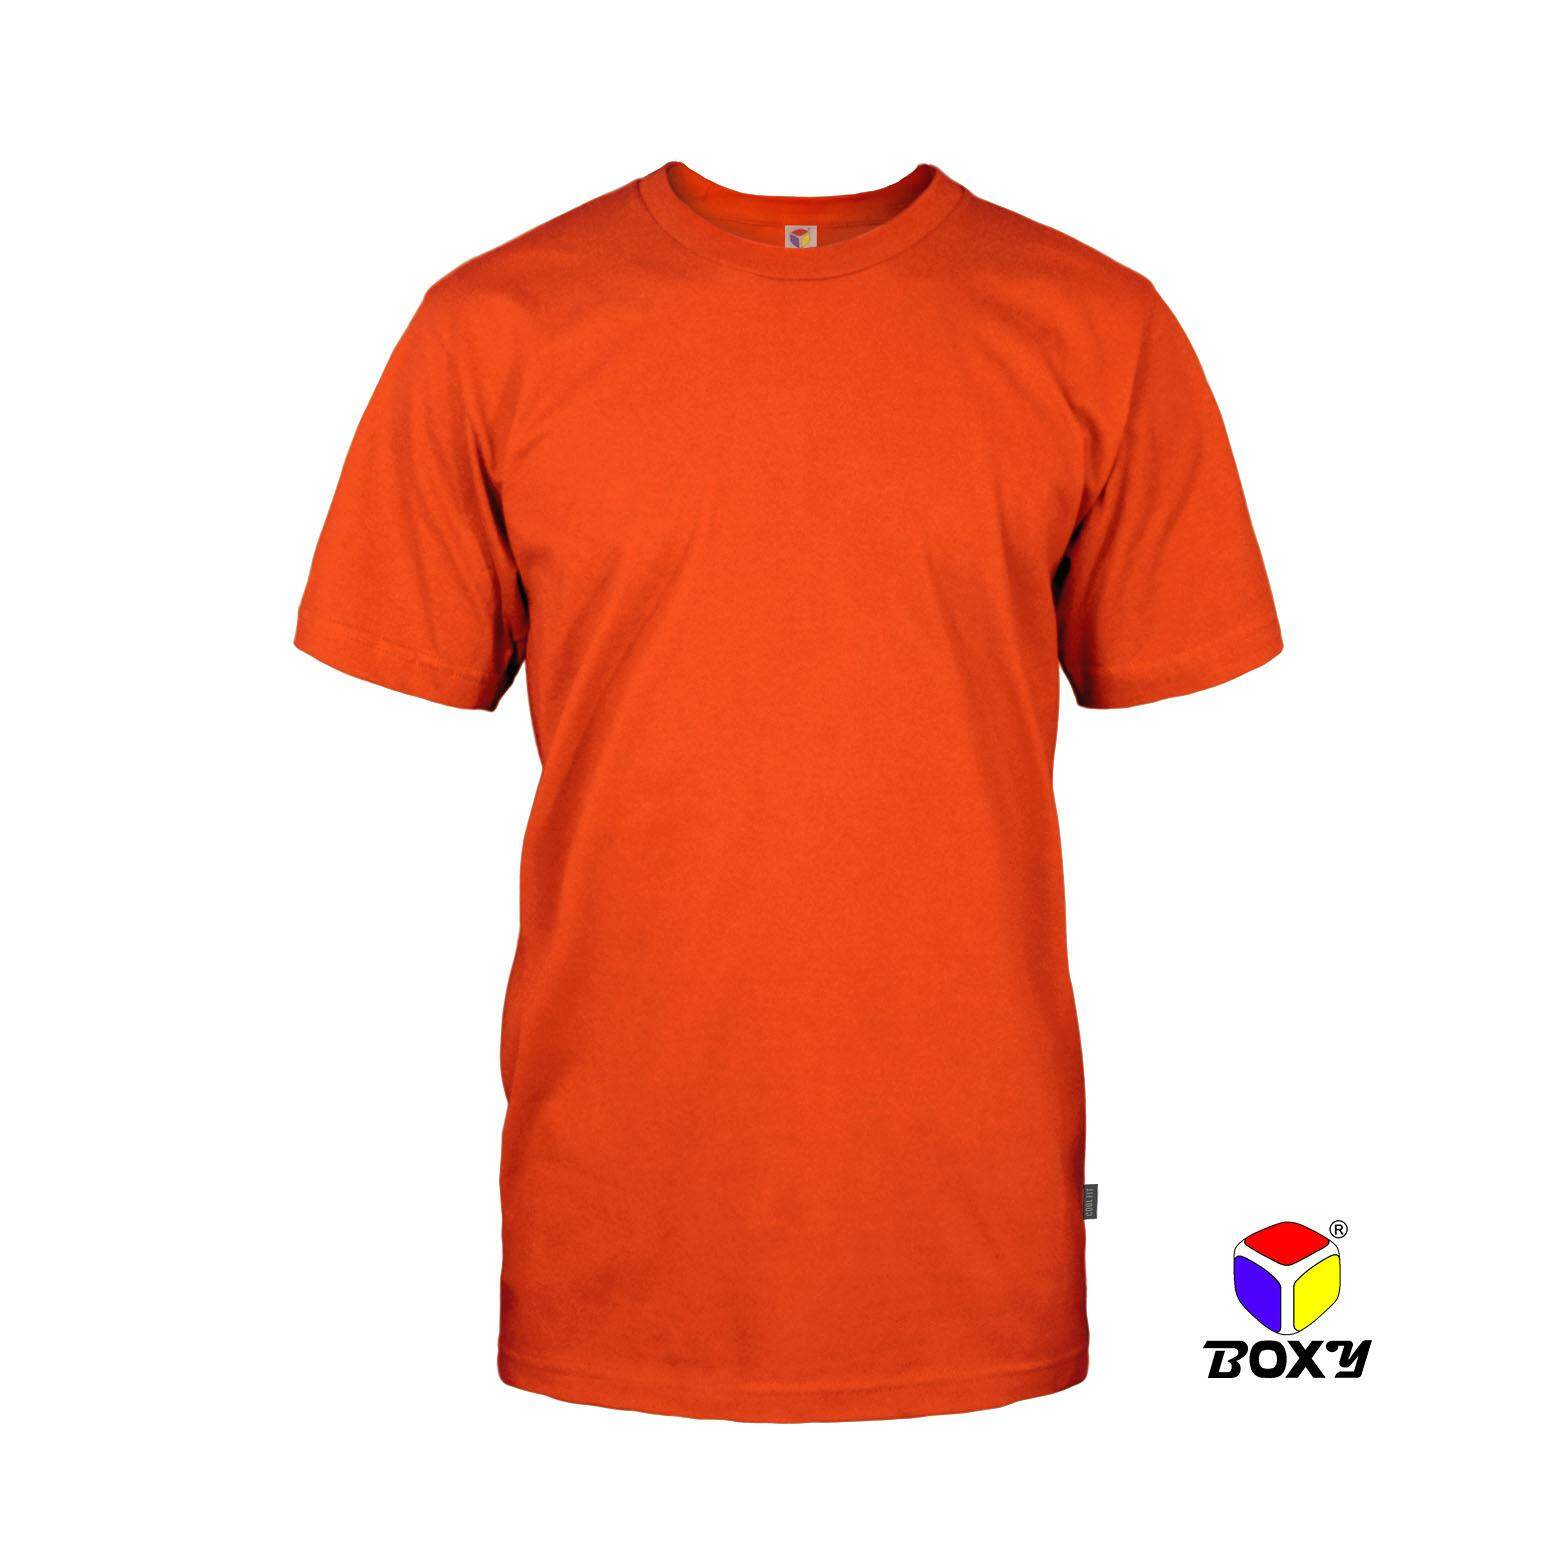 Popular T Shirts For Men The Best Prices In Malaysia Tendencies Tshirt Mick Hitam M